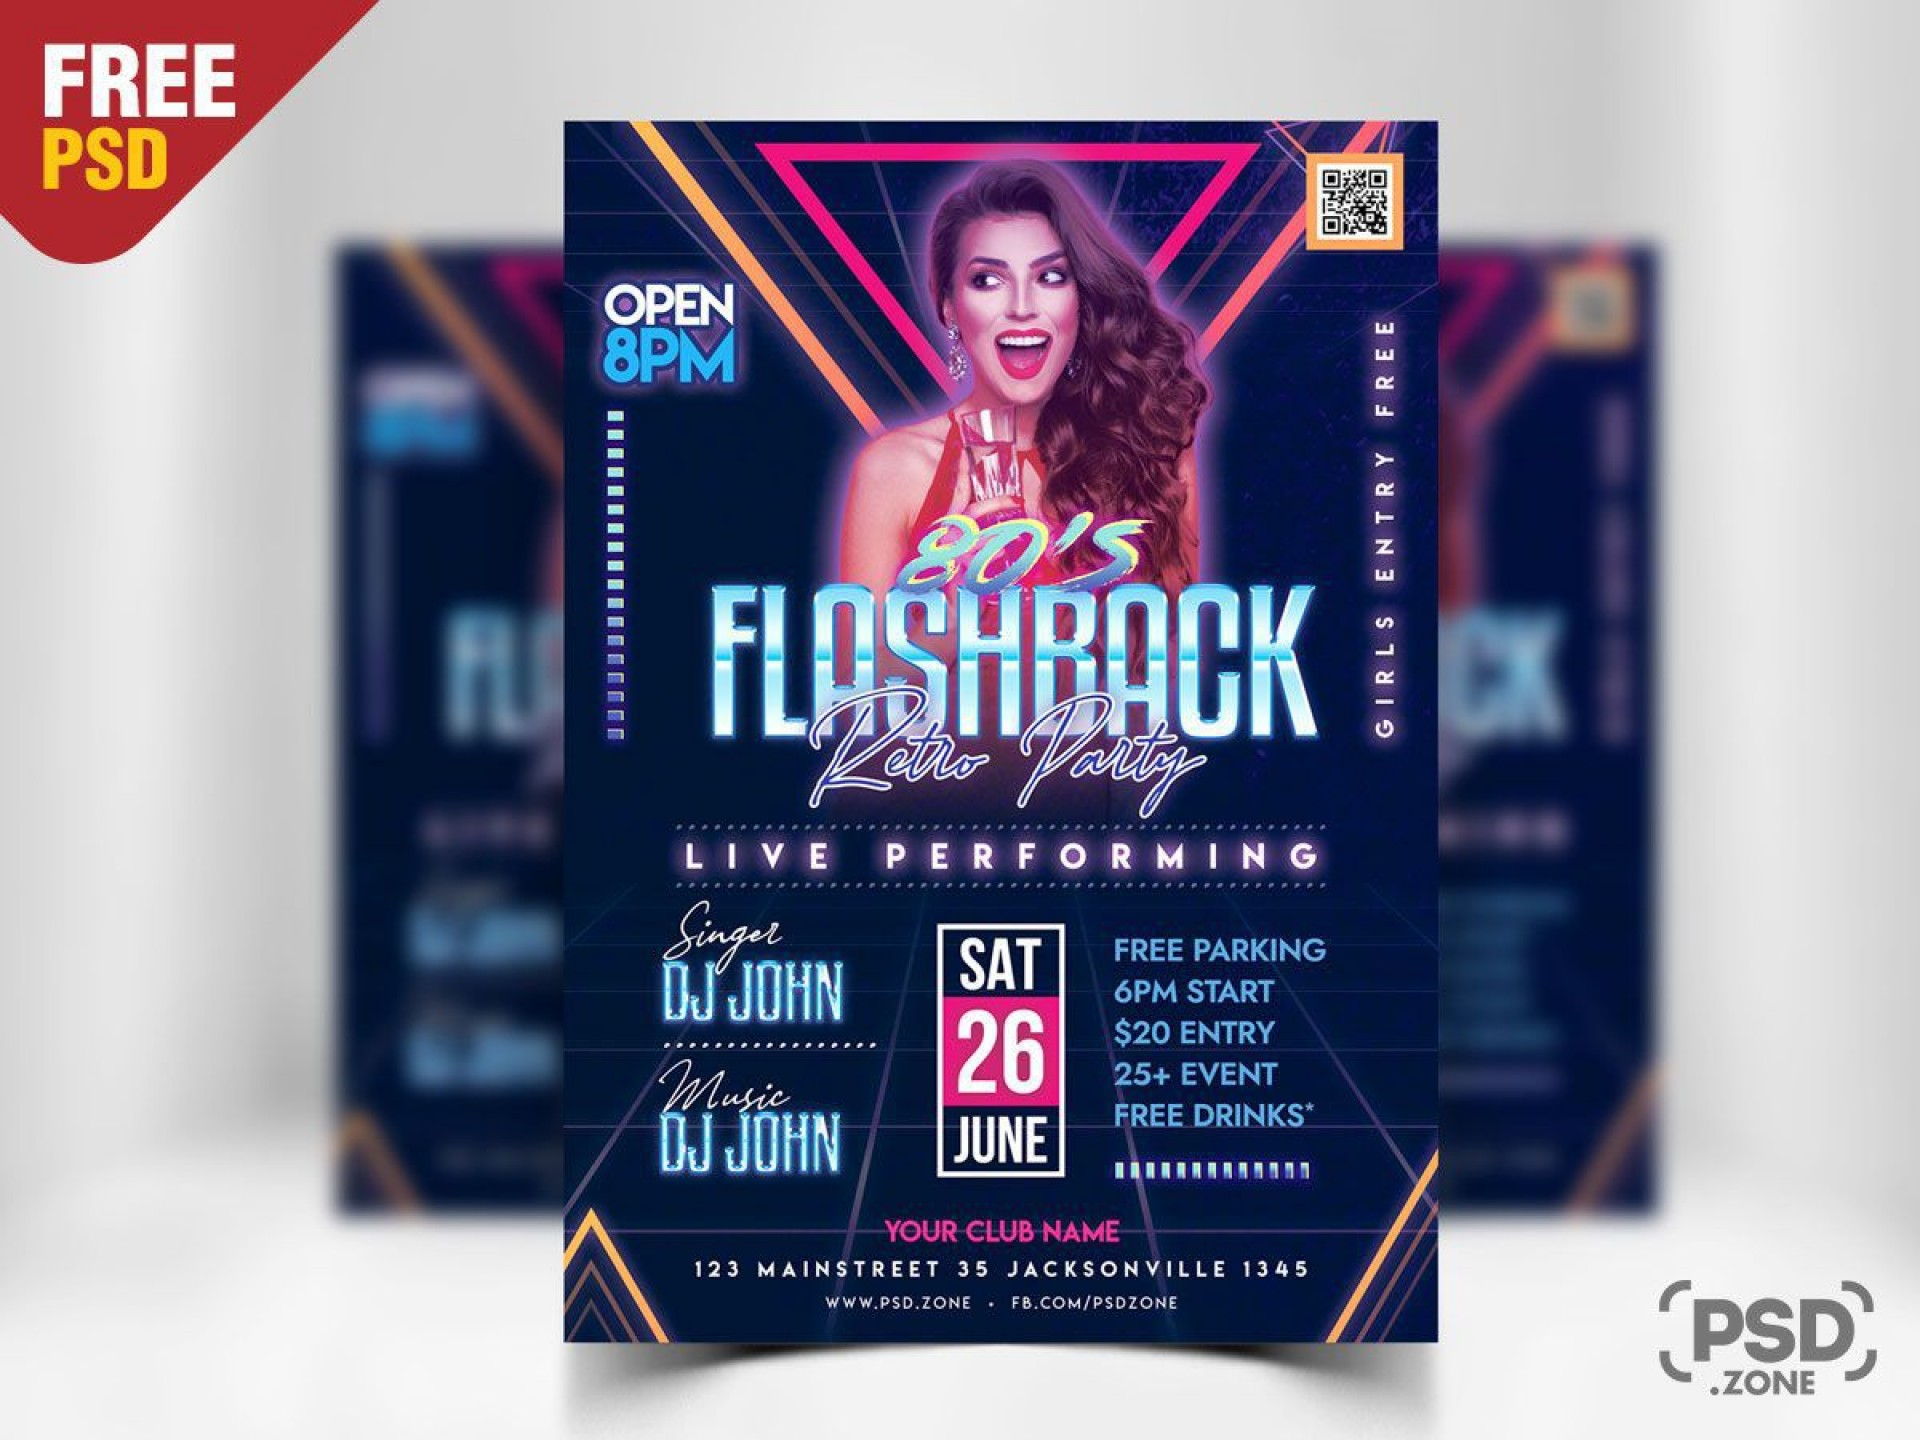 009 Awful Party Flyer Psd Template Free Download Image  Rave1920